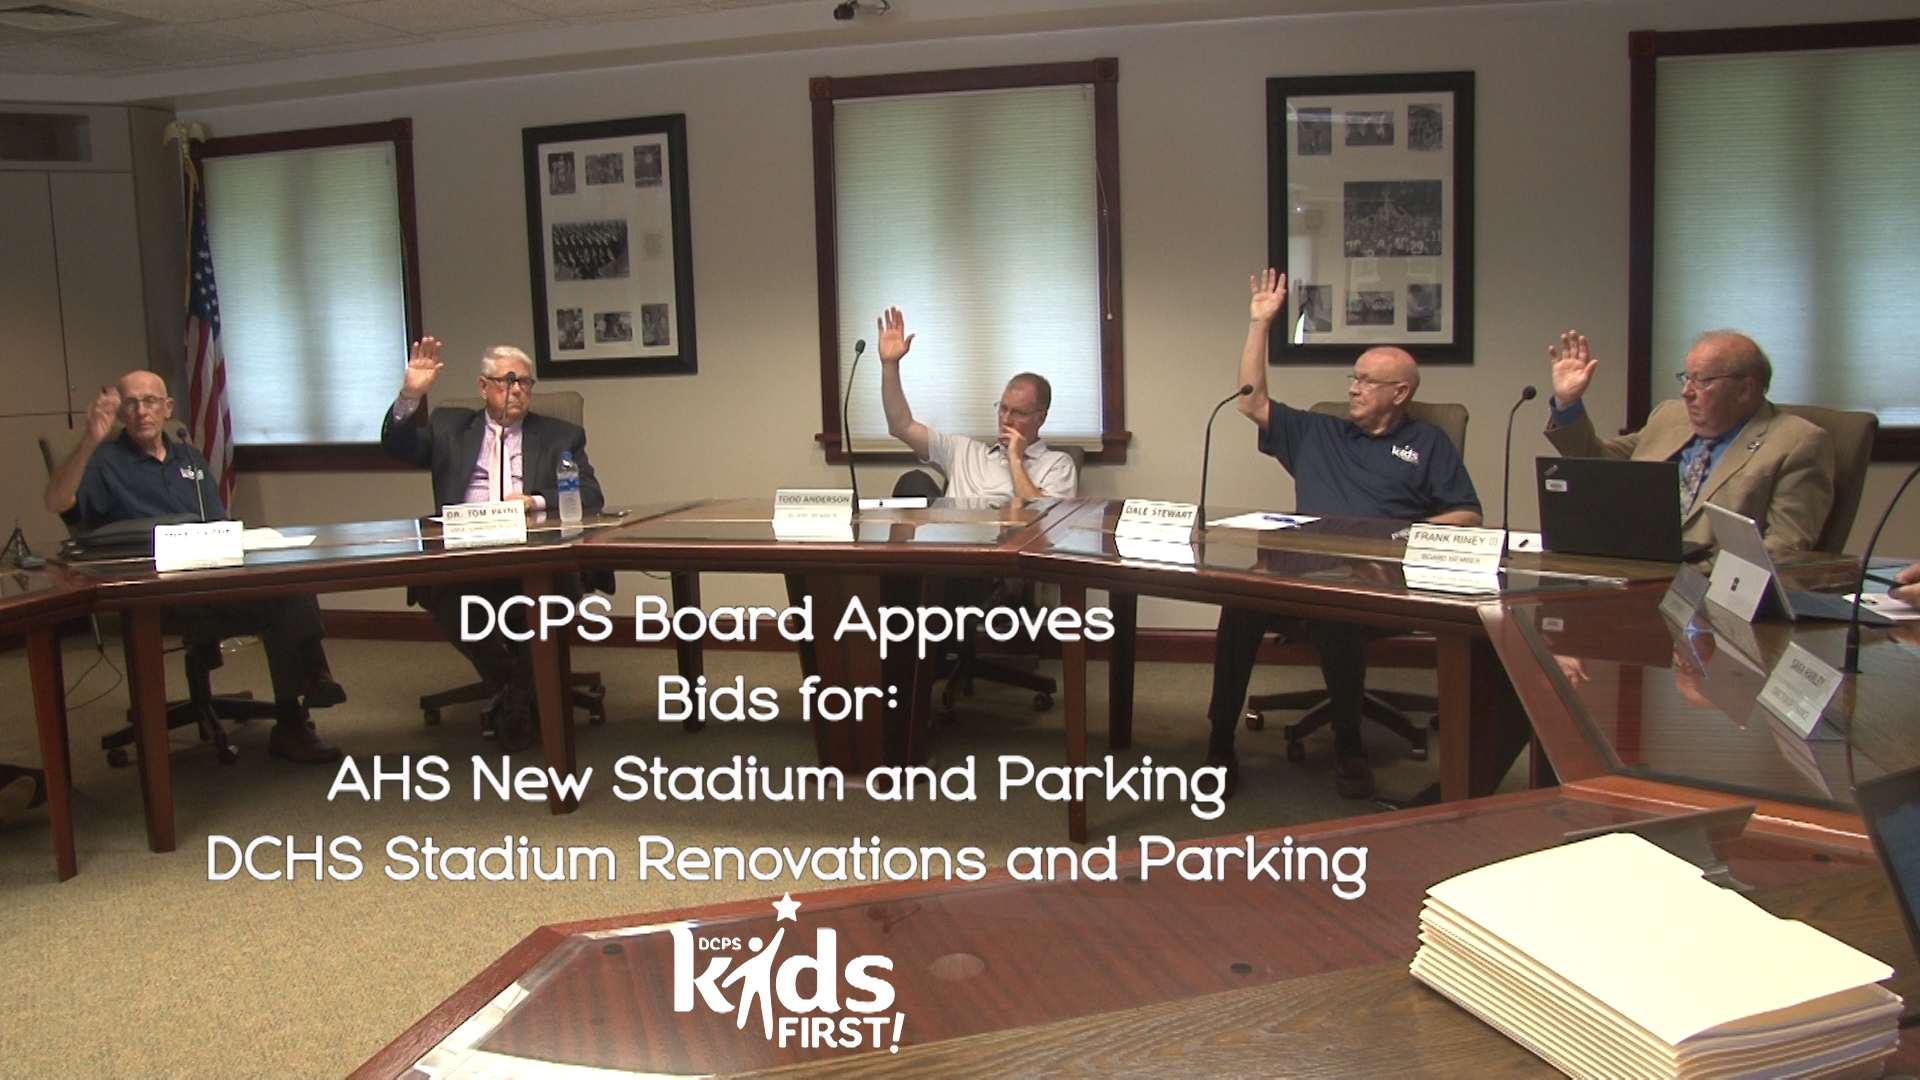 DCPS Board Approves Construction Project